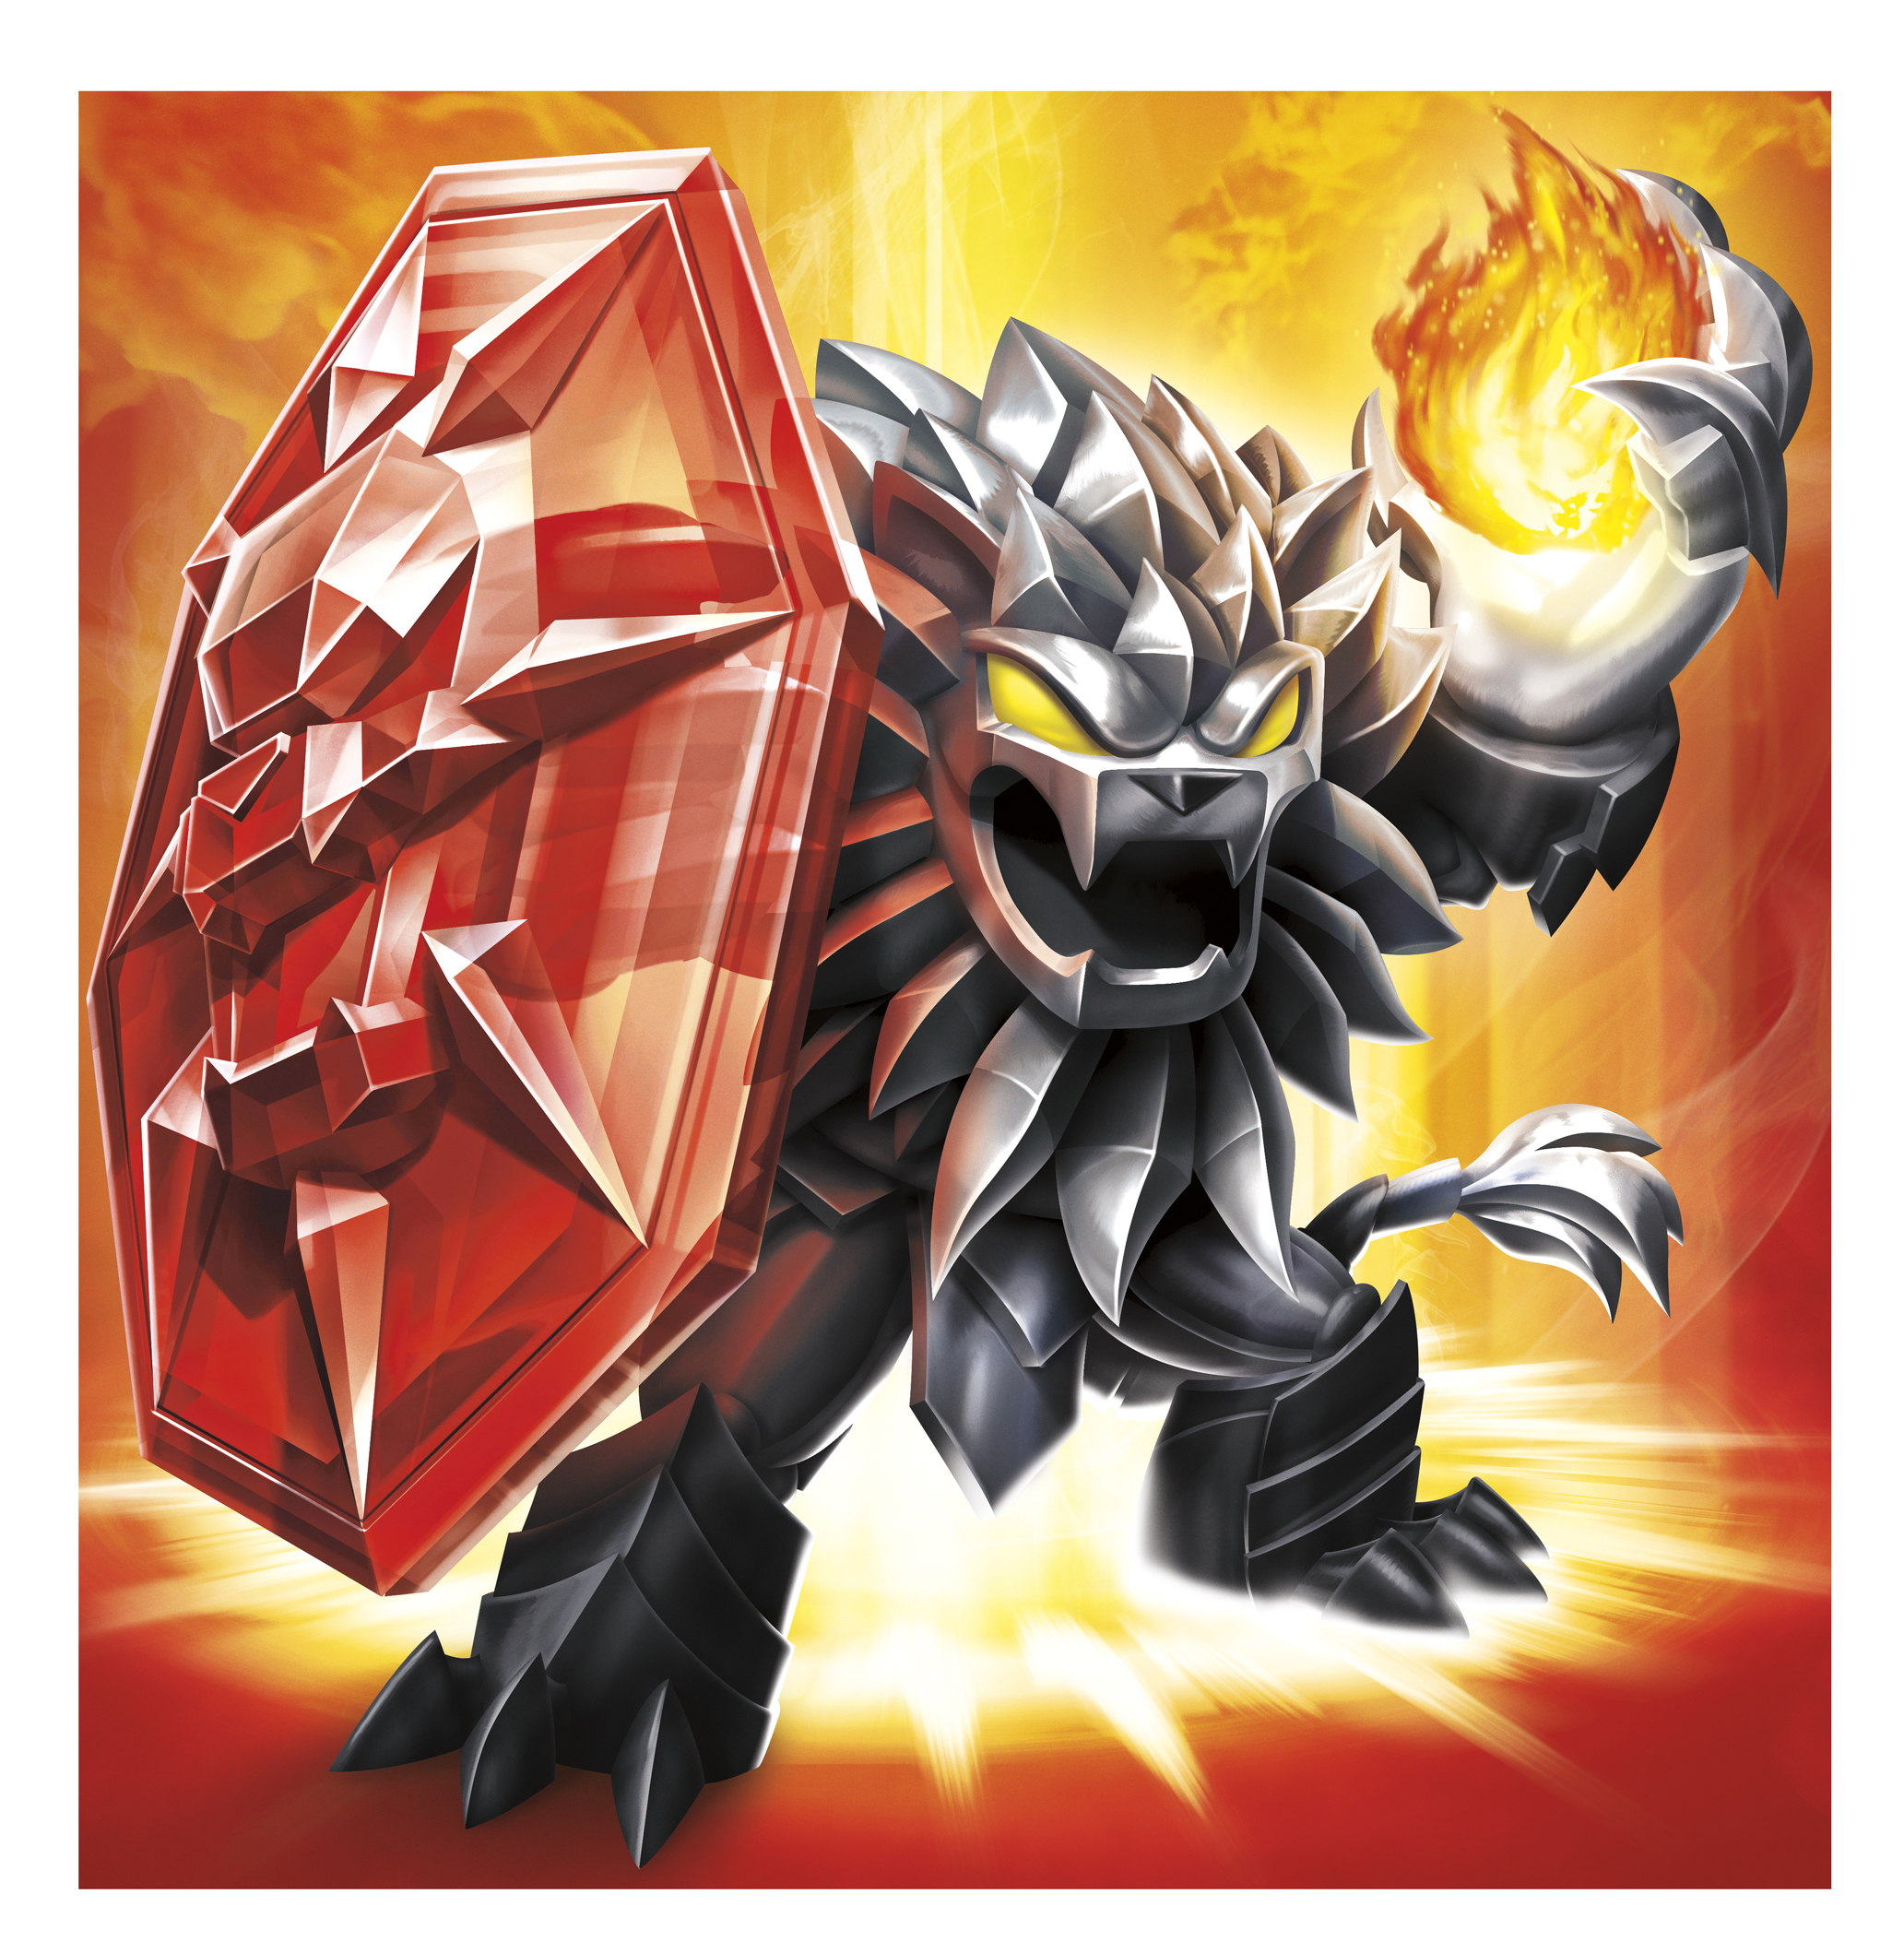 Skylanders Trap Team Dark Edition Wildfire Character Illustration. (Photo: Business Wire)